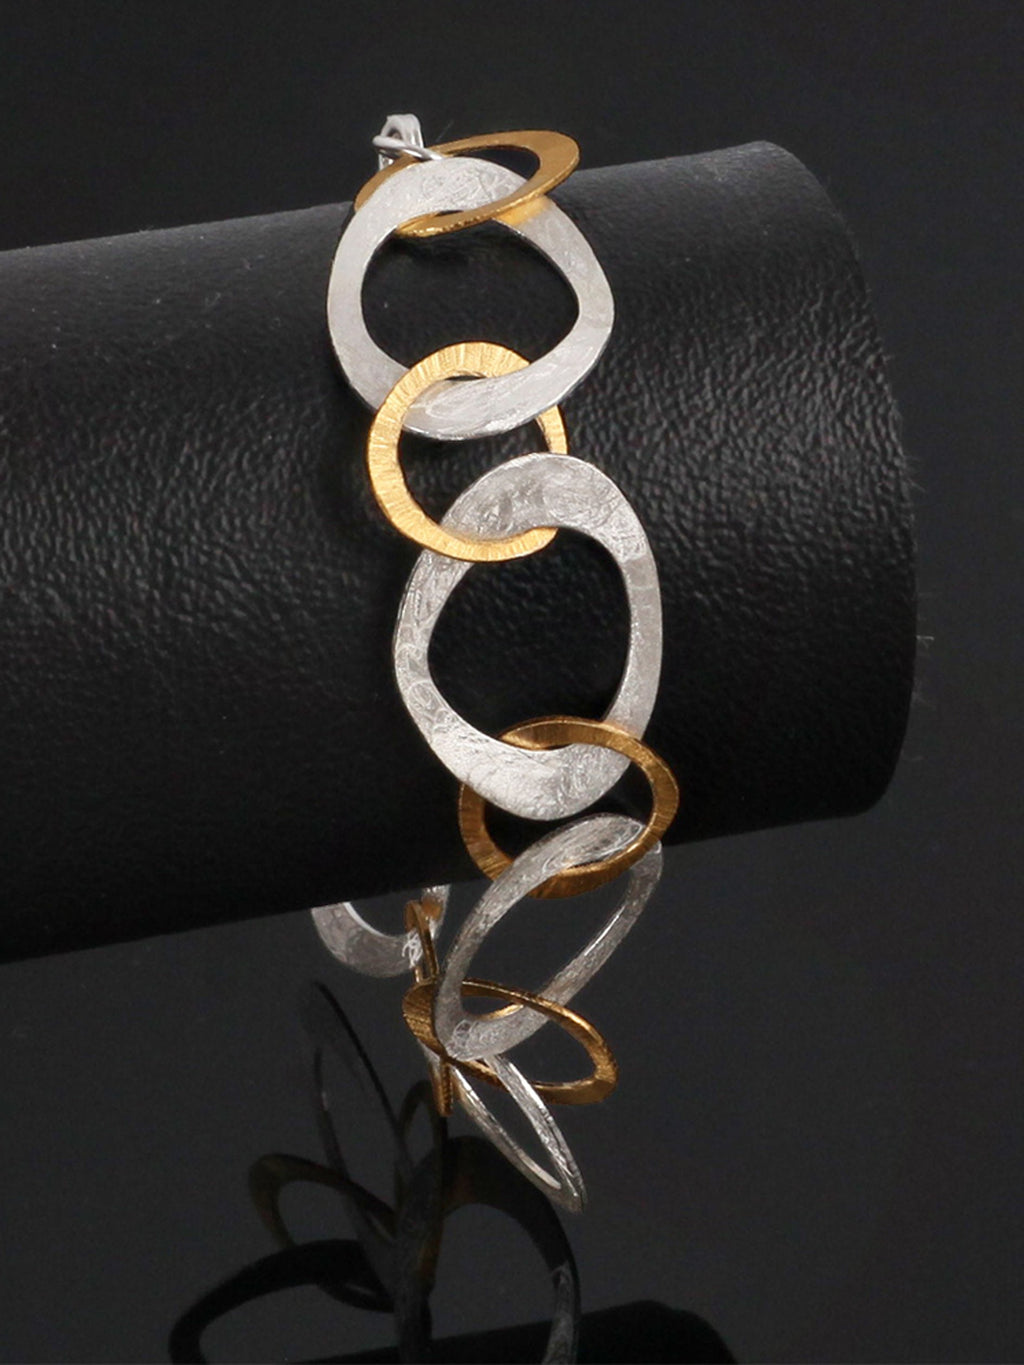 Brushed Silver Bracelet with Gold-Plated Links